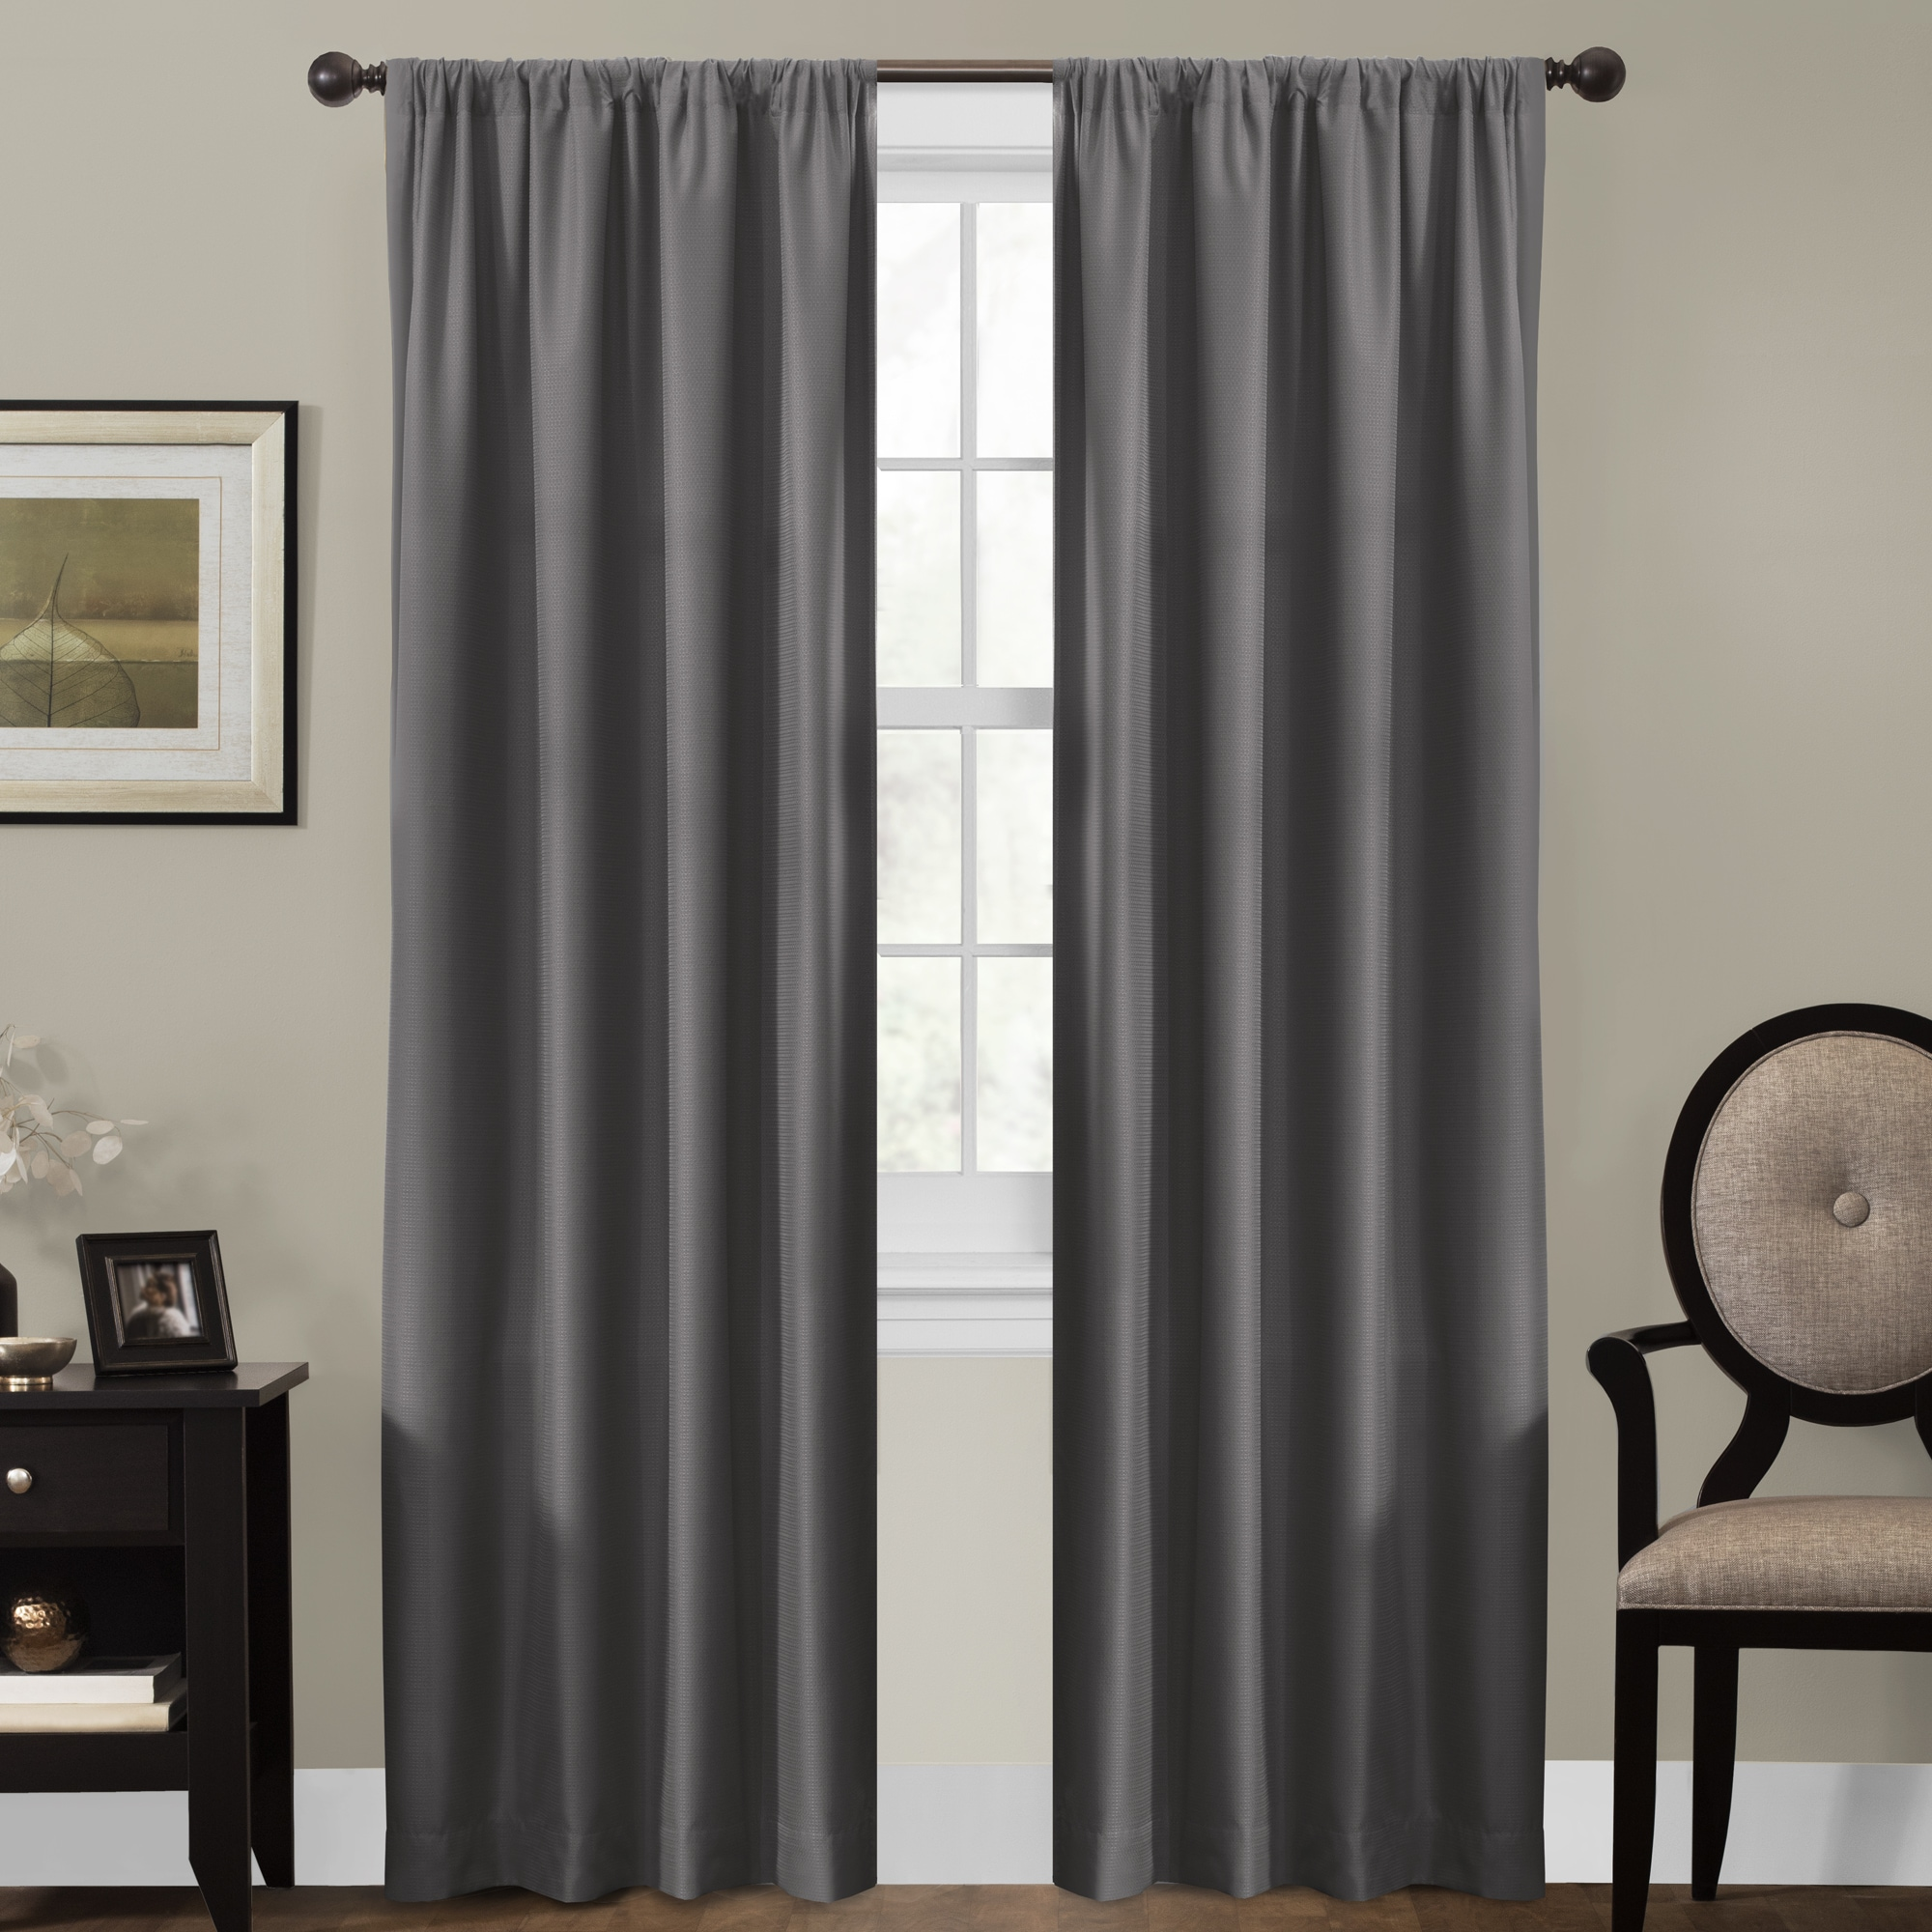 gray and drapes carousel large zag white curtains width lining panels zig coordinating designs linen drape inch panel length standard all